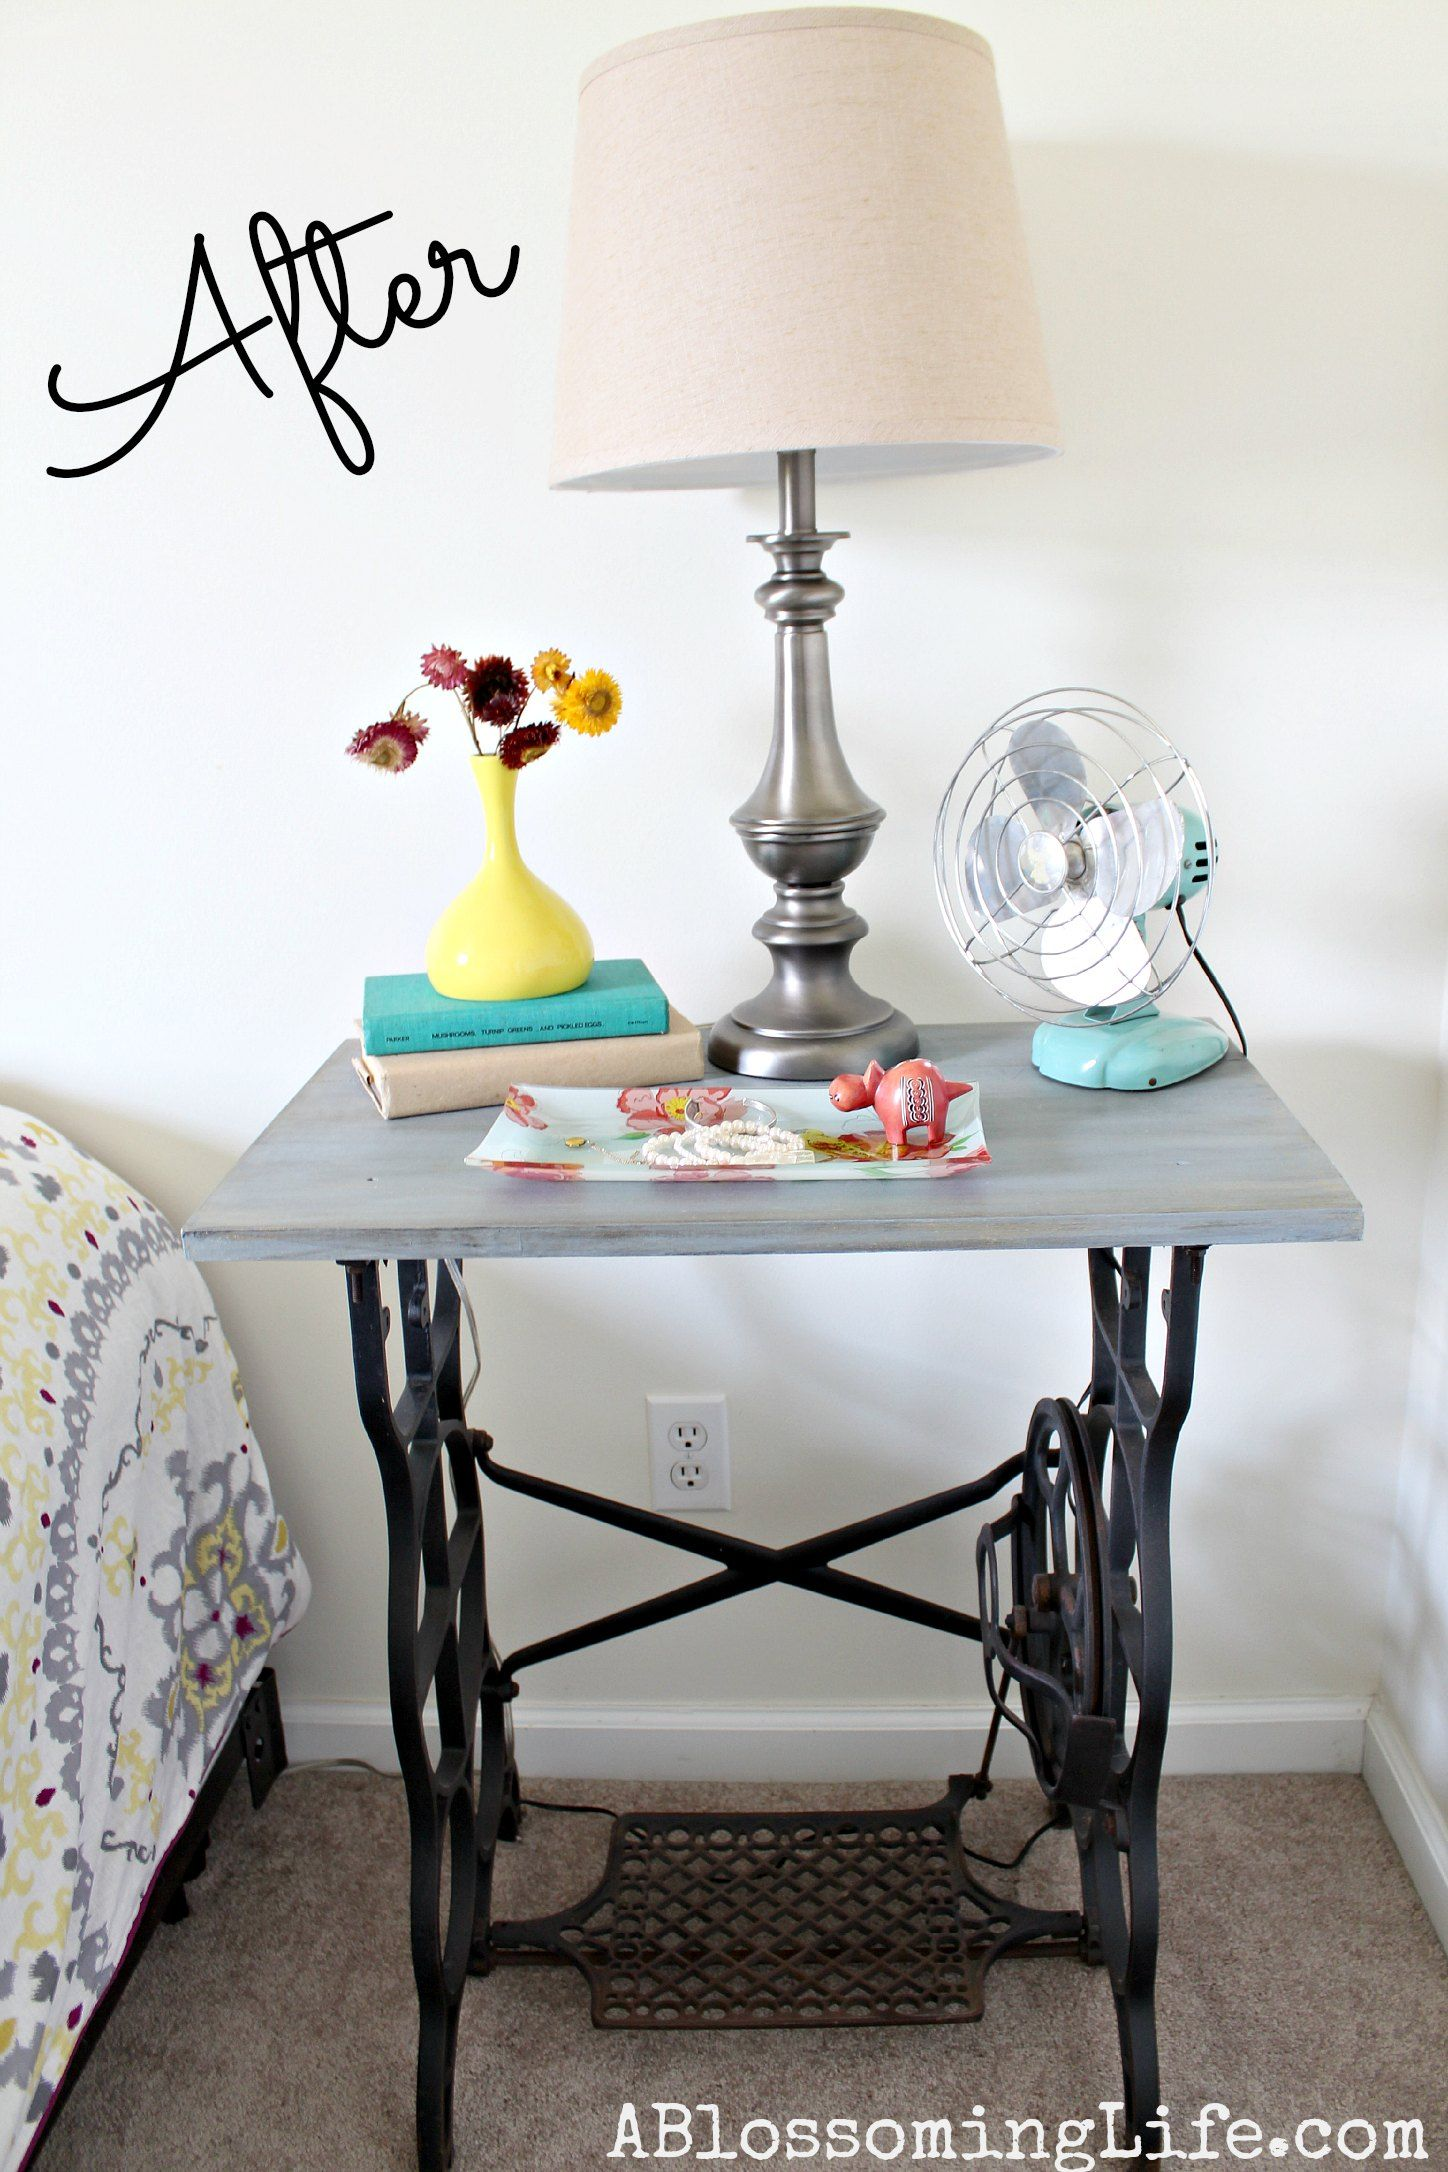 DIY Old Sewing Machine Redo to Nightstand! - | Nightstands, Sewing ...